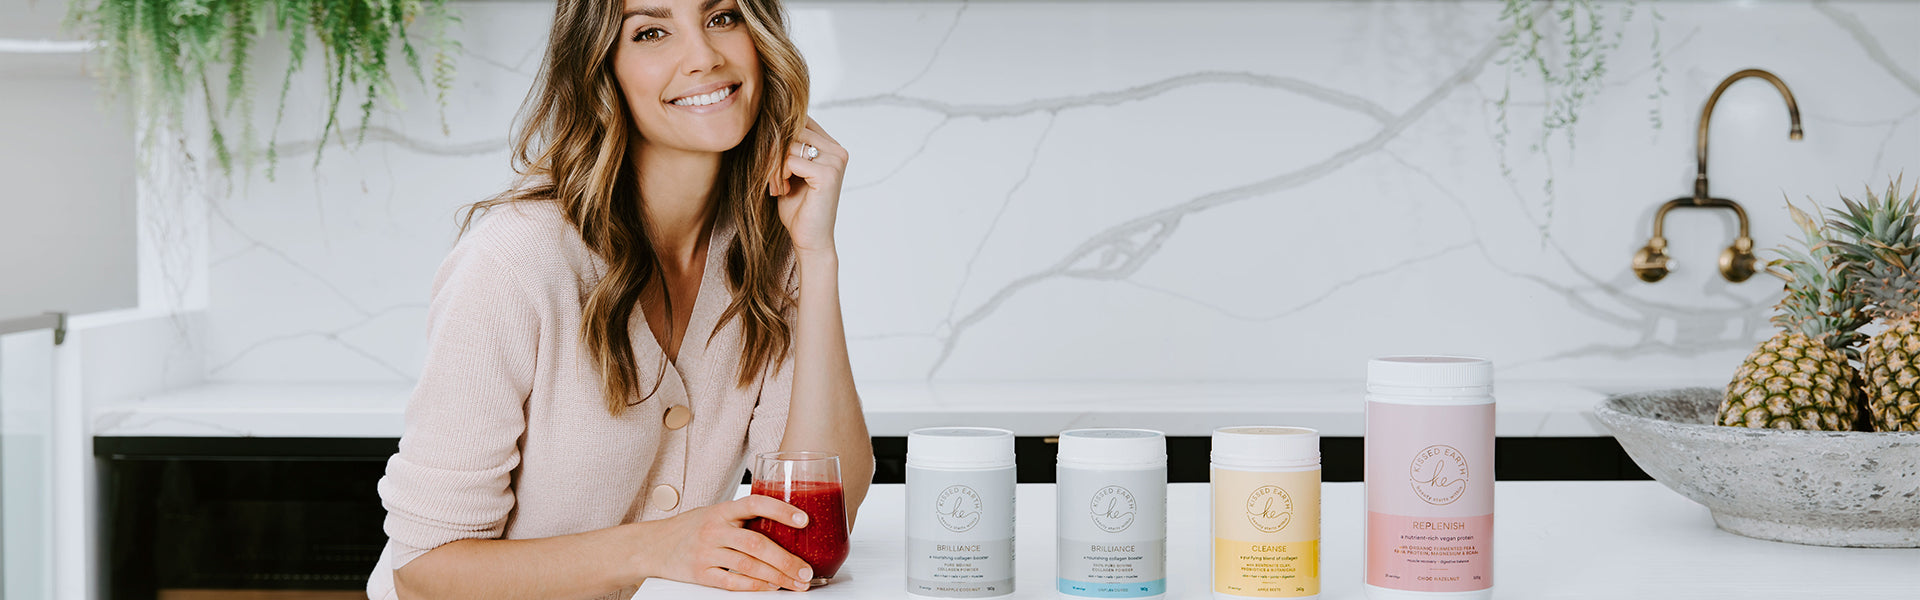 Kissed_Earth_Natural_Collagen_Supplements